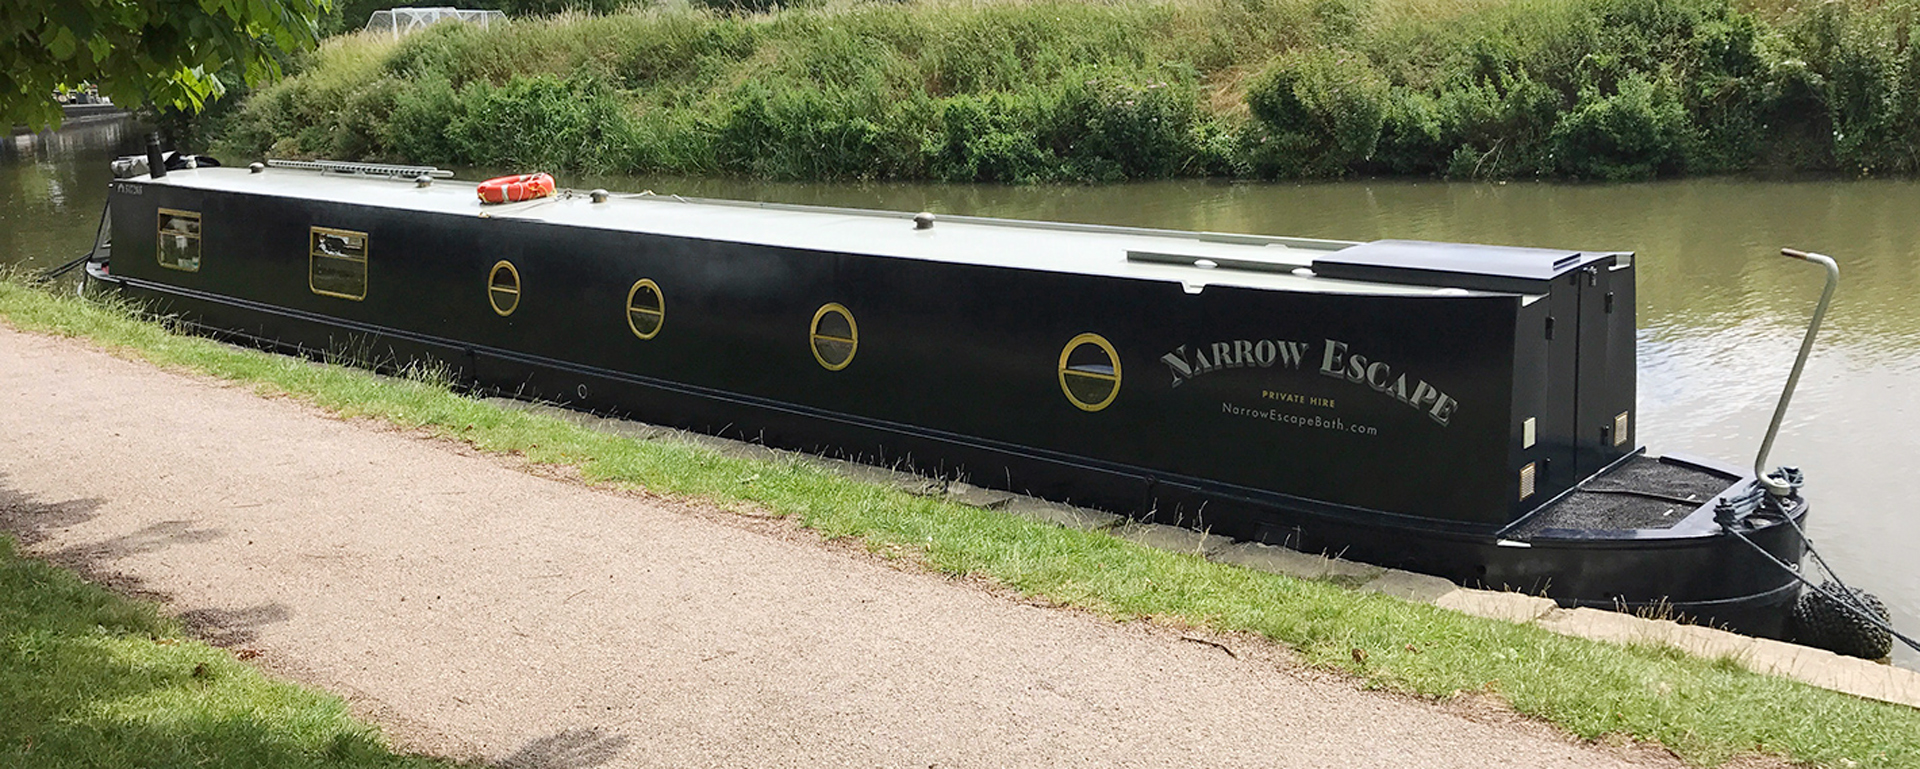 Narrow Escape moored near Bath